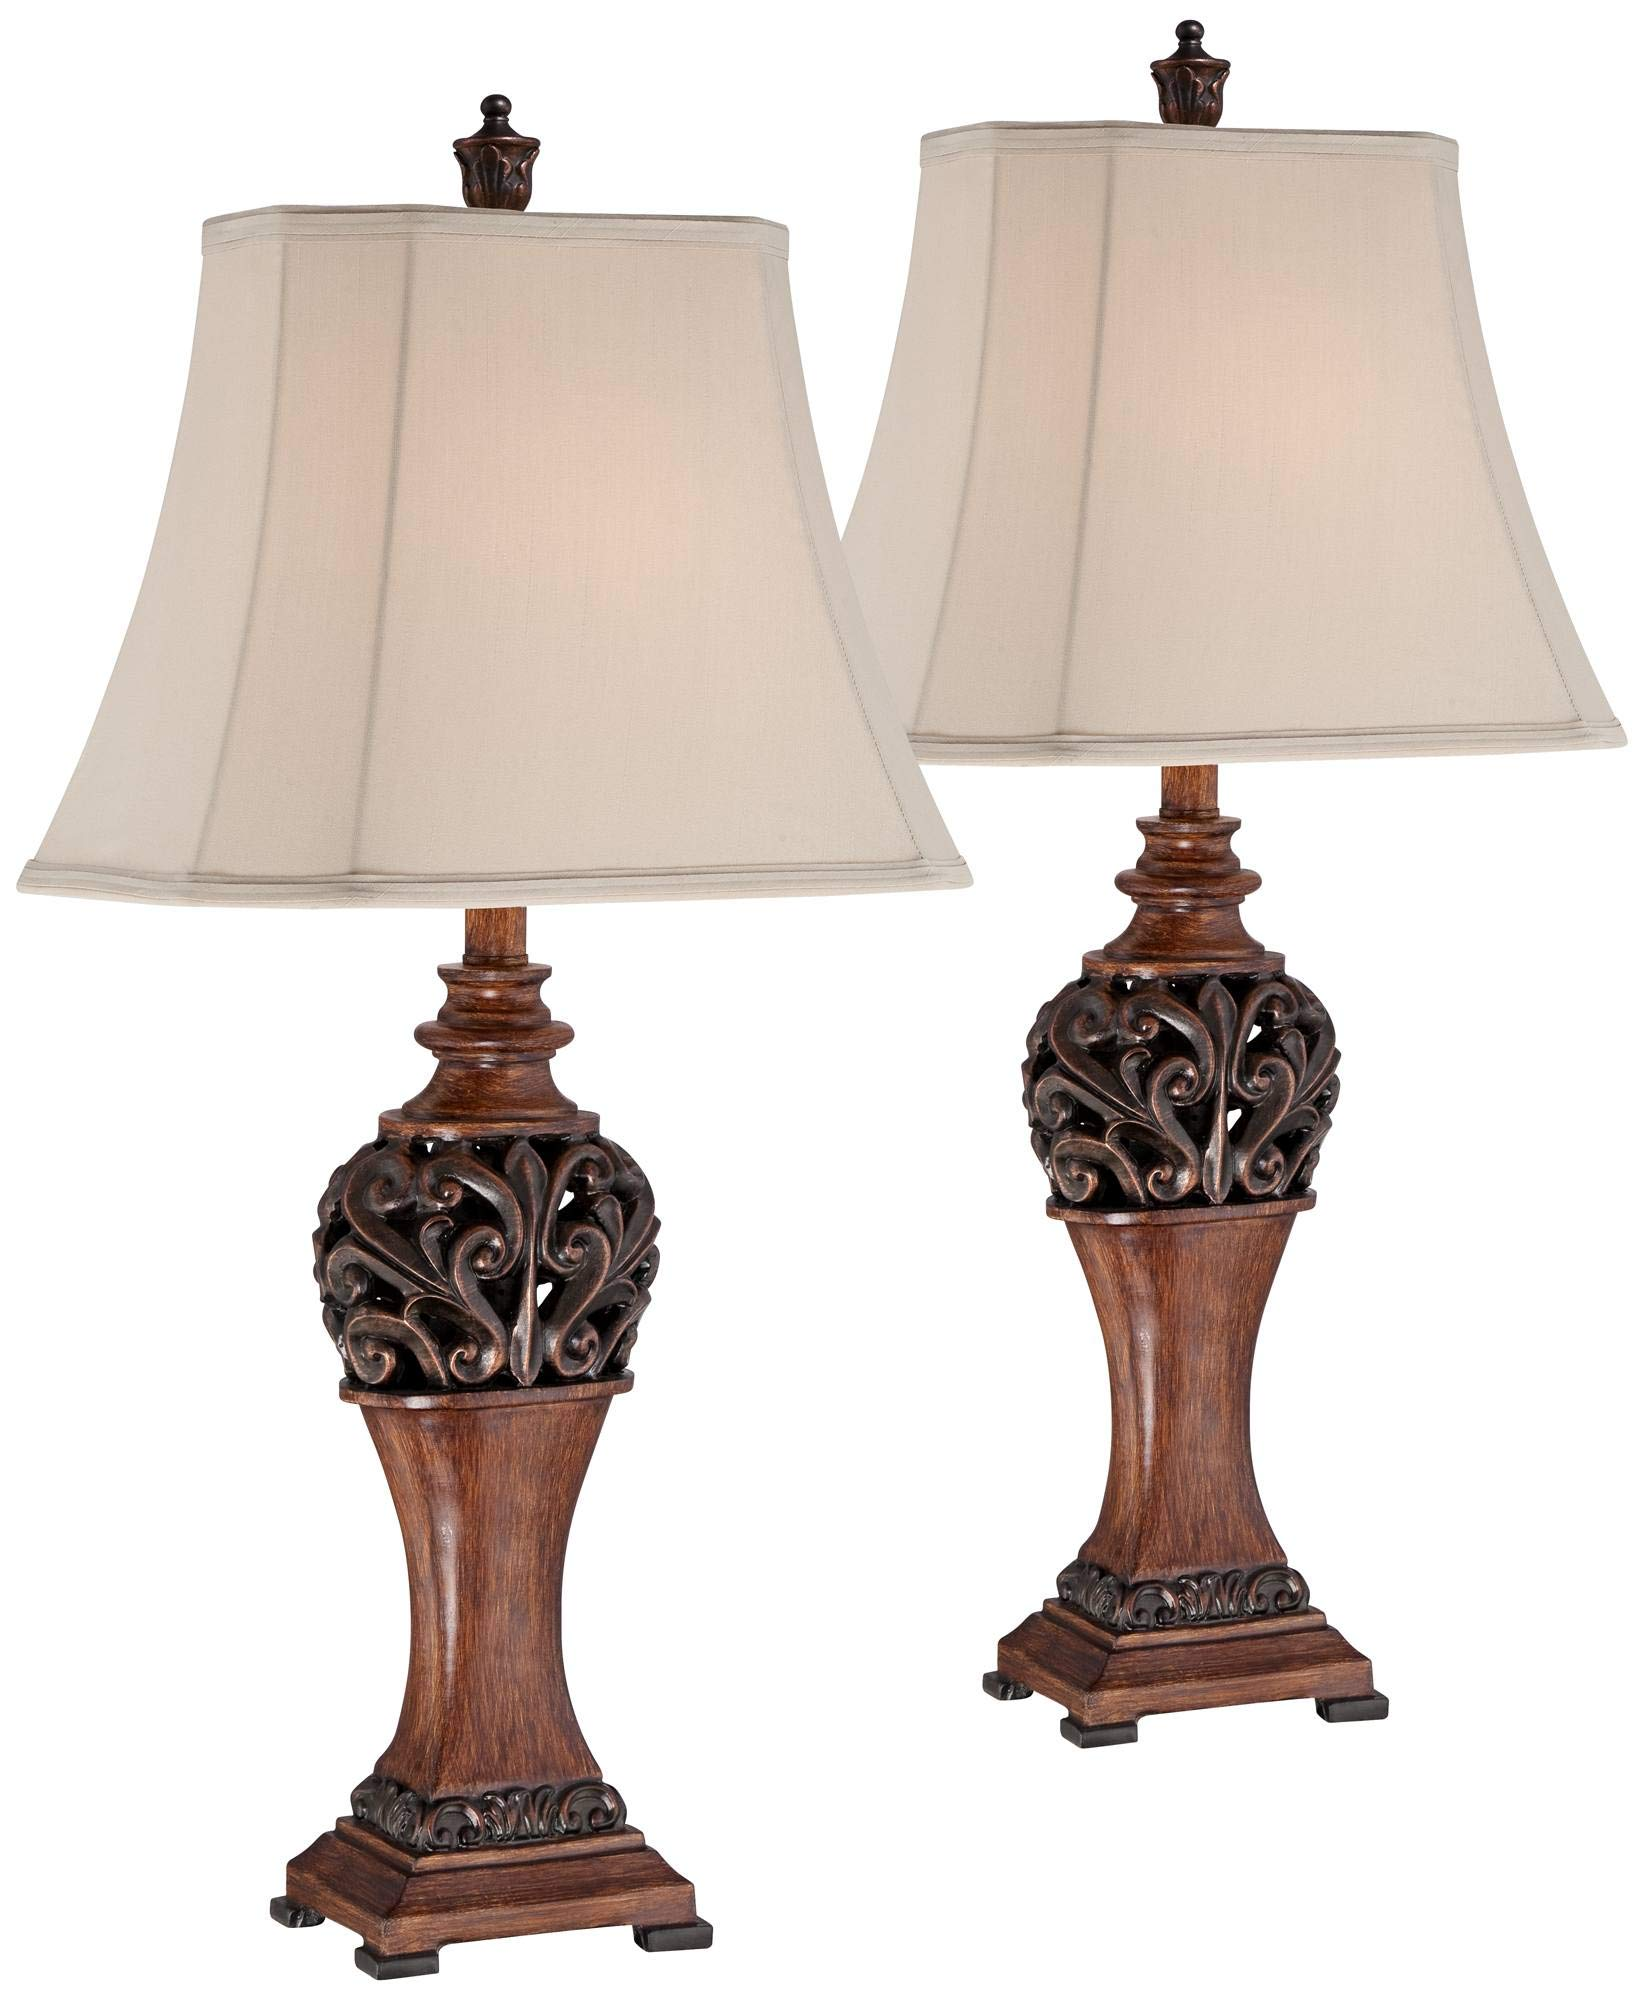 Exeter traditional table lamps set of 2 bronze wood carved leaf creme rectangular bell shade for living room family bedroom regency hill amazon com